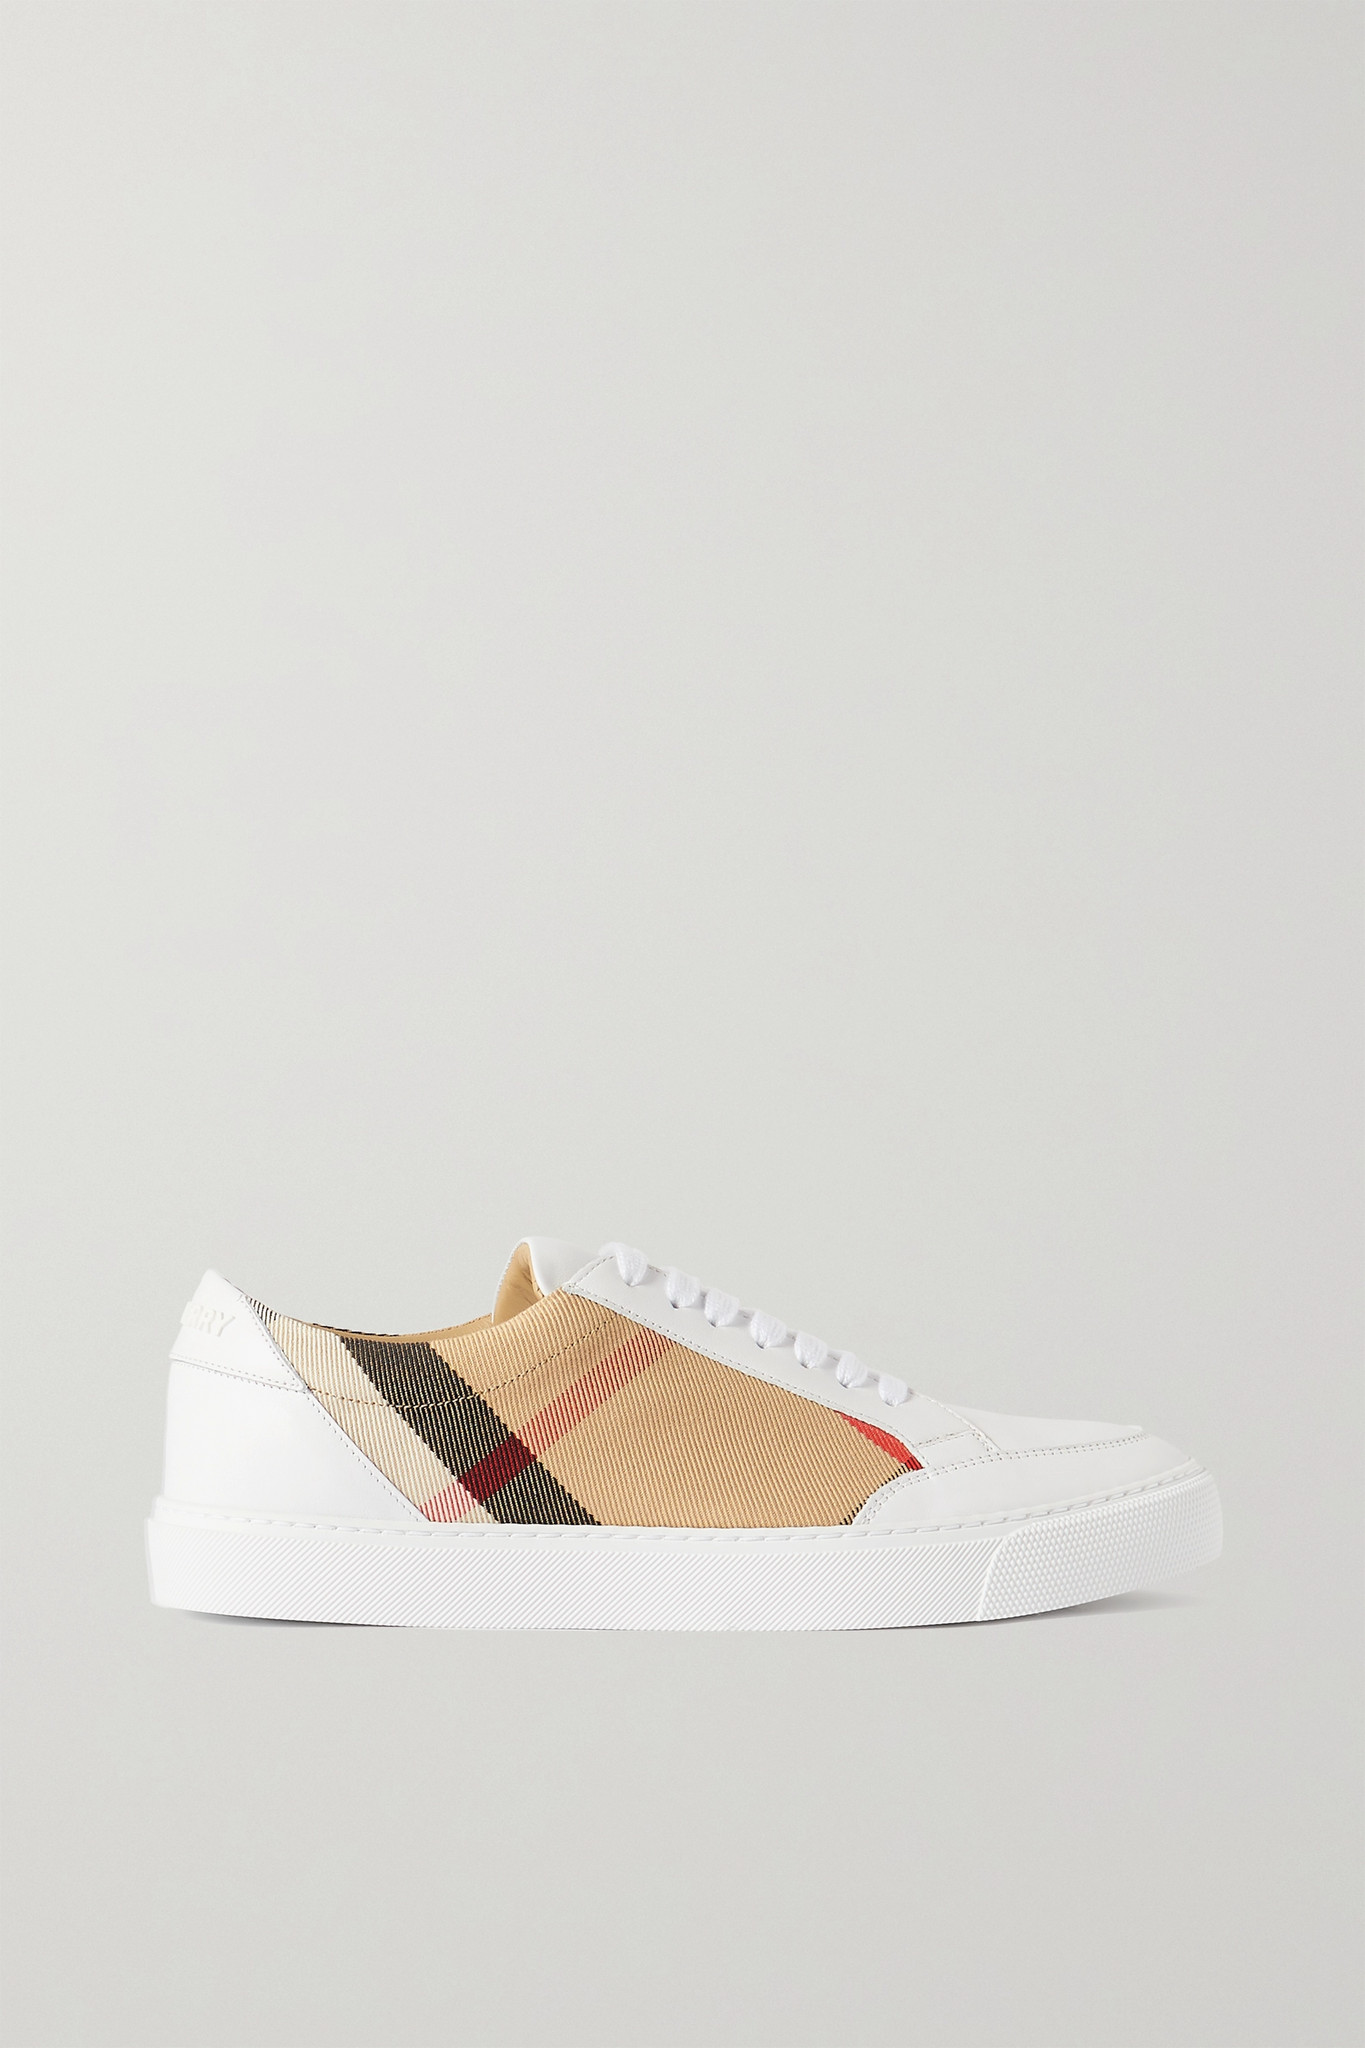 BURBERRY - Checked Canvas And Leather Sneakers - Neutrals - IT36